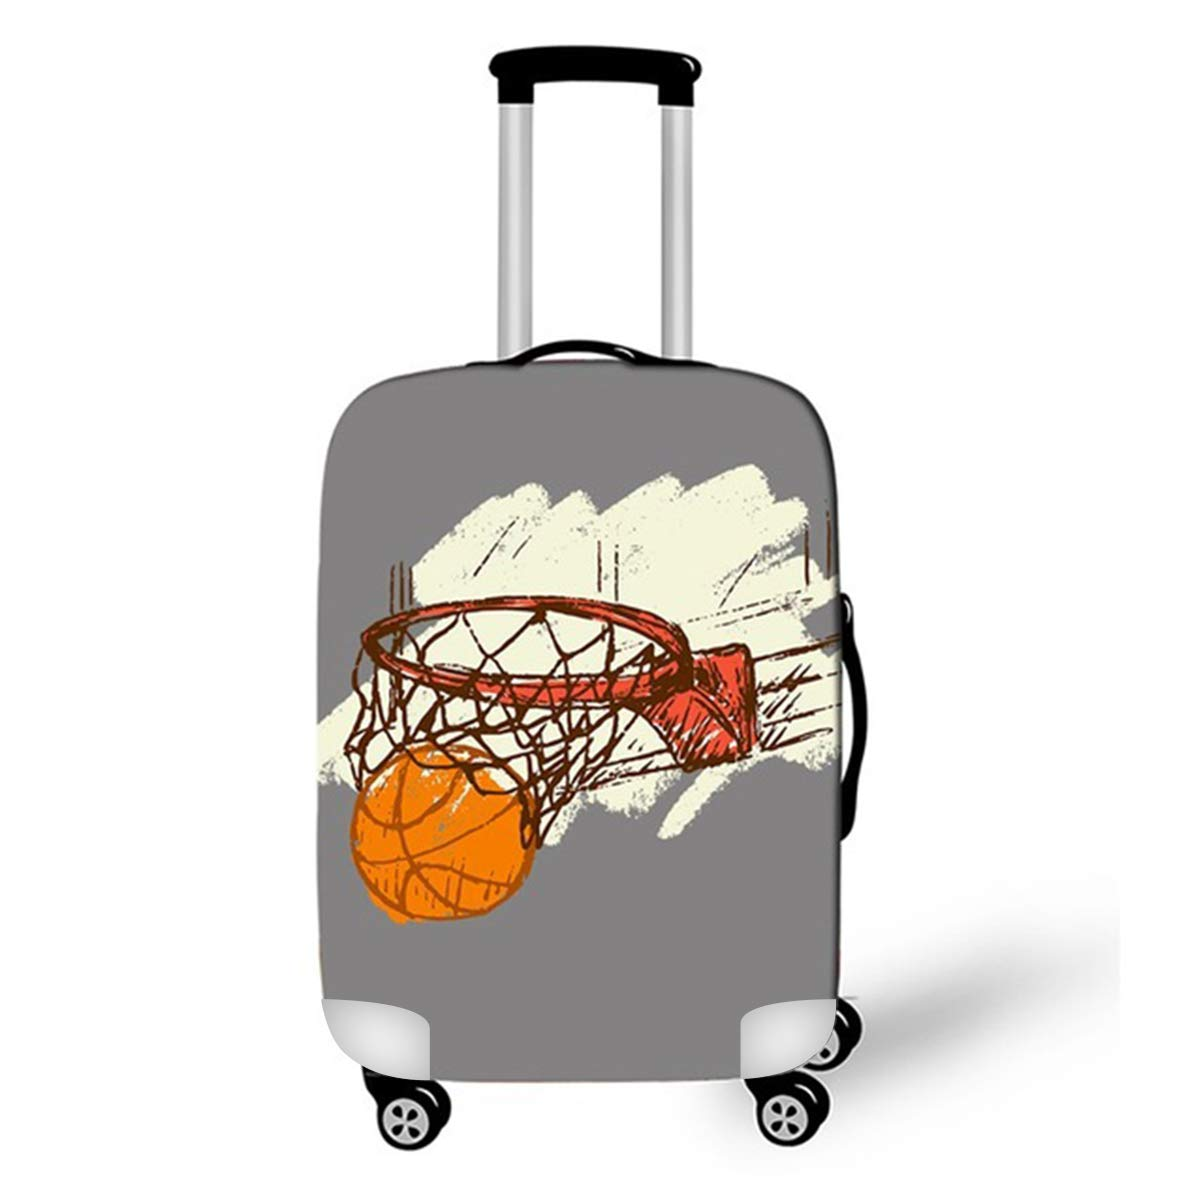 M Basketball3 OSVINO Basketball Pattern Suitcase Cover Baggage Luggage Protector 18-28 Inches for 22-24 Suitcase